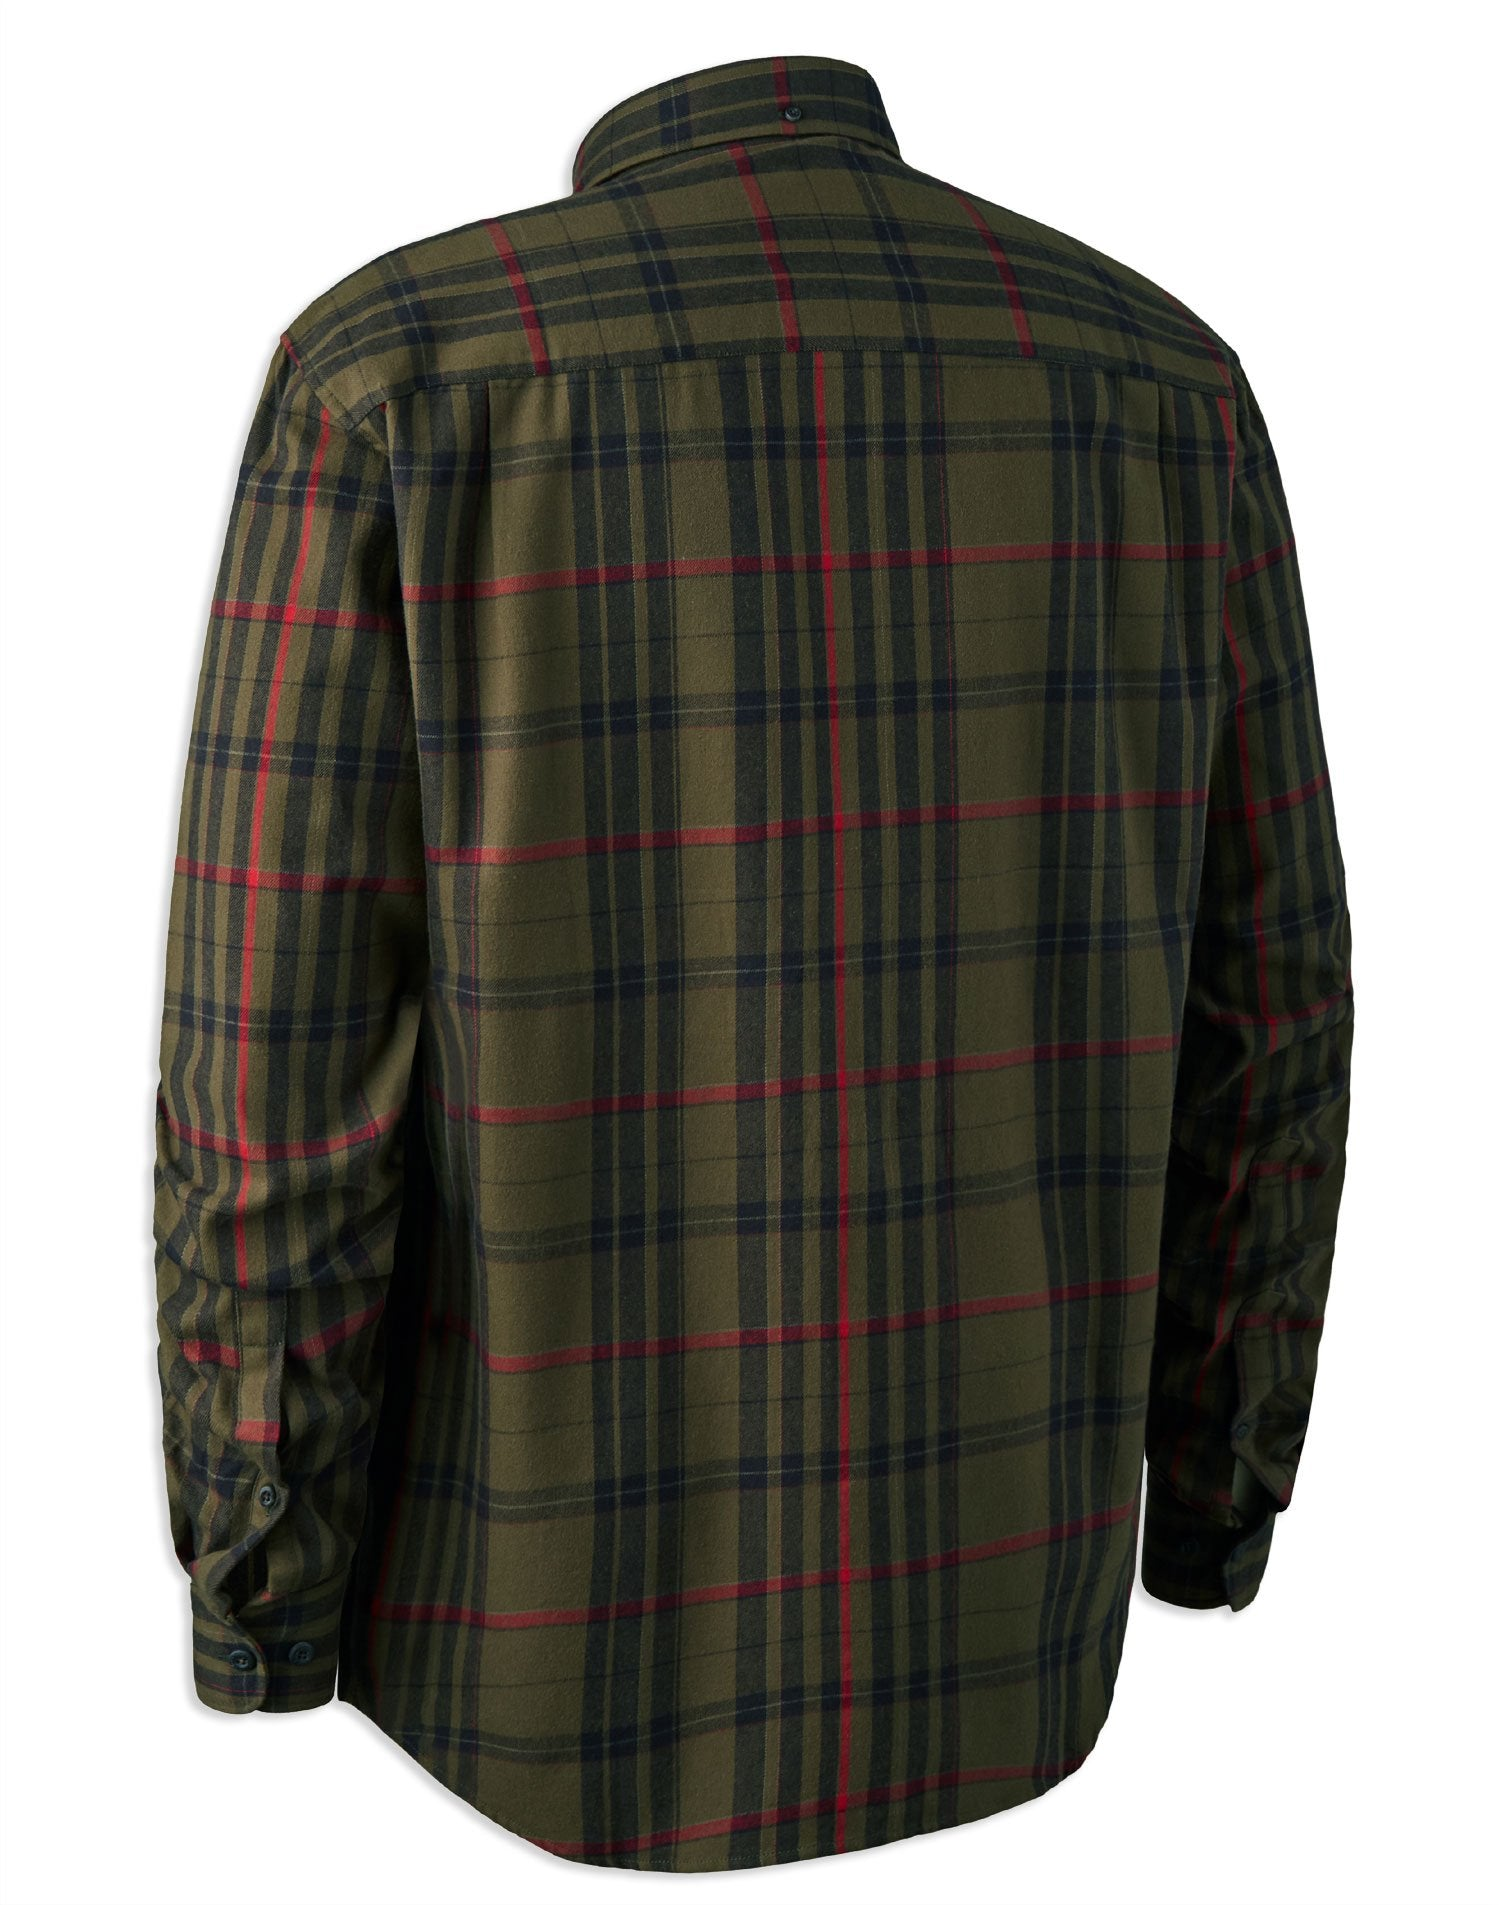 Deerhunter Larry Check Shirt Back View